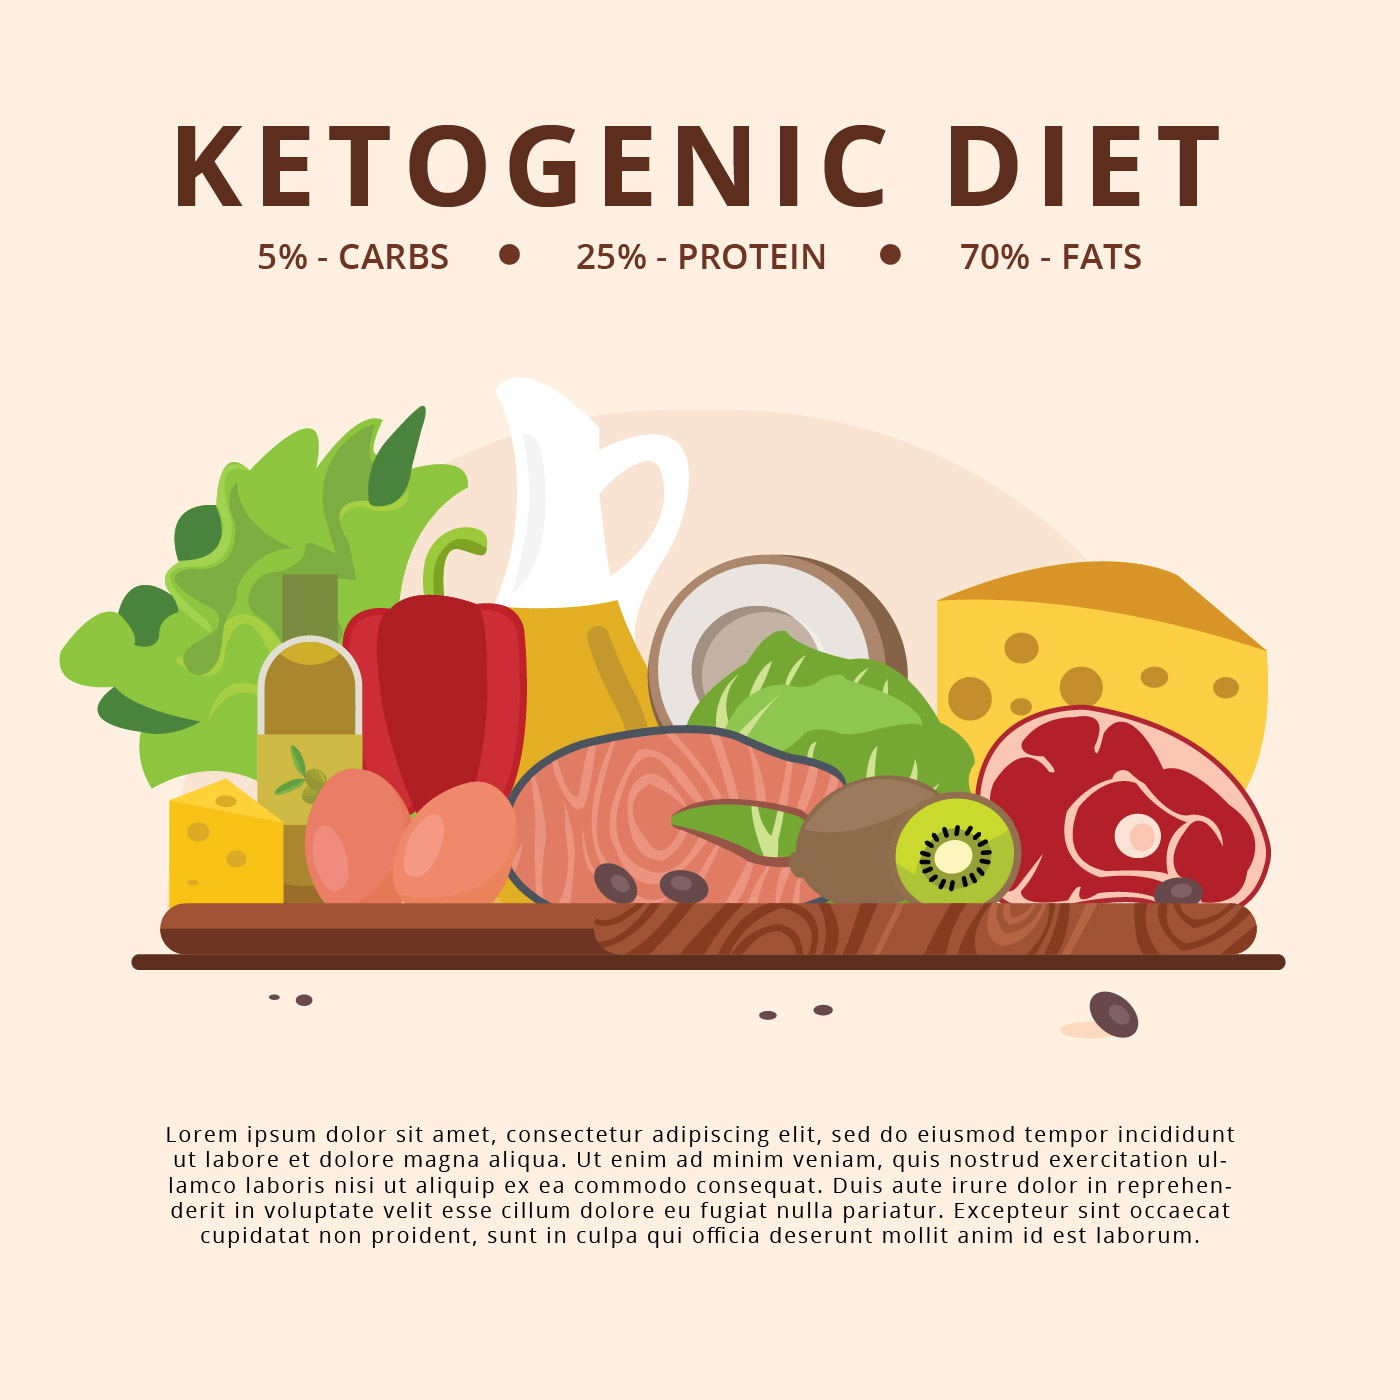 Diet vectors and photos - free graphic resources